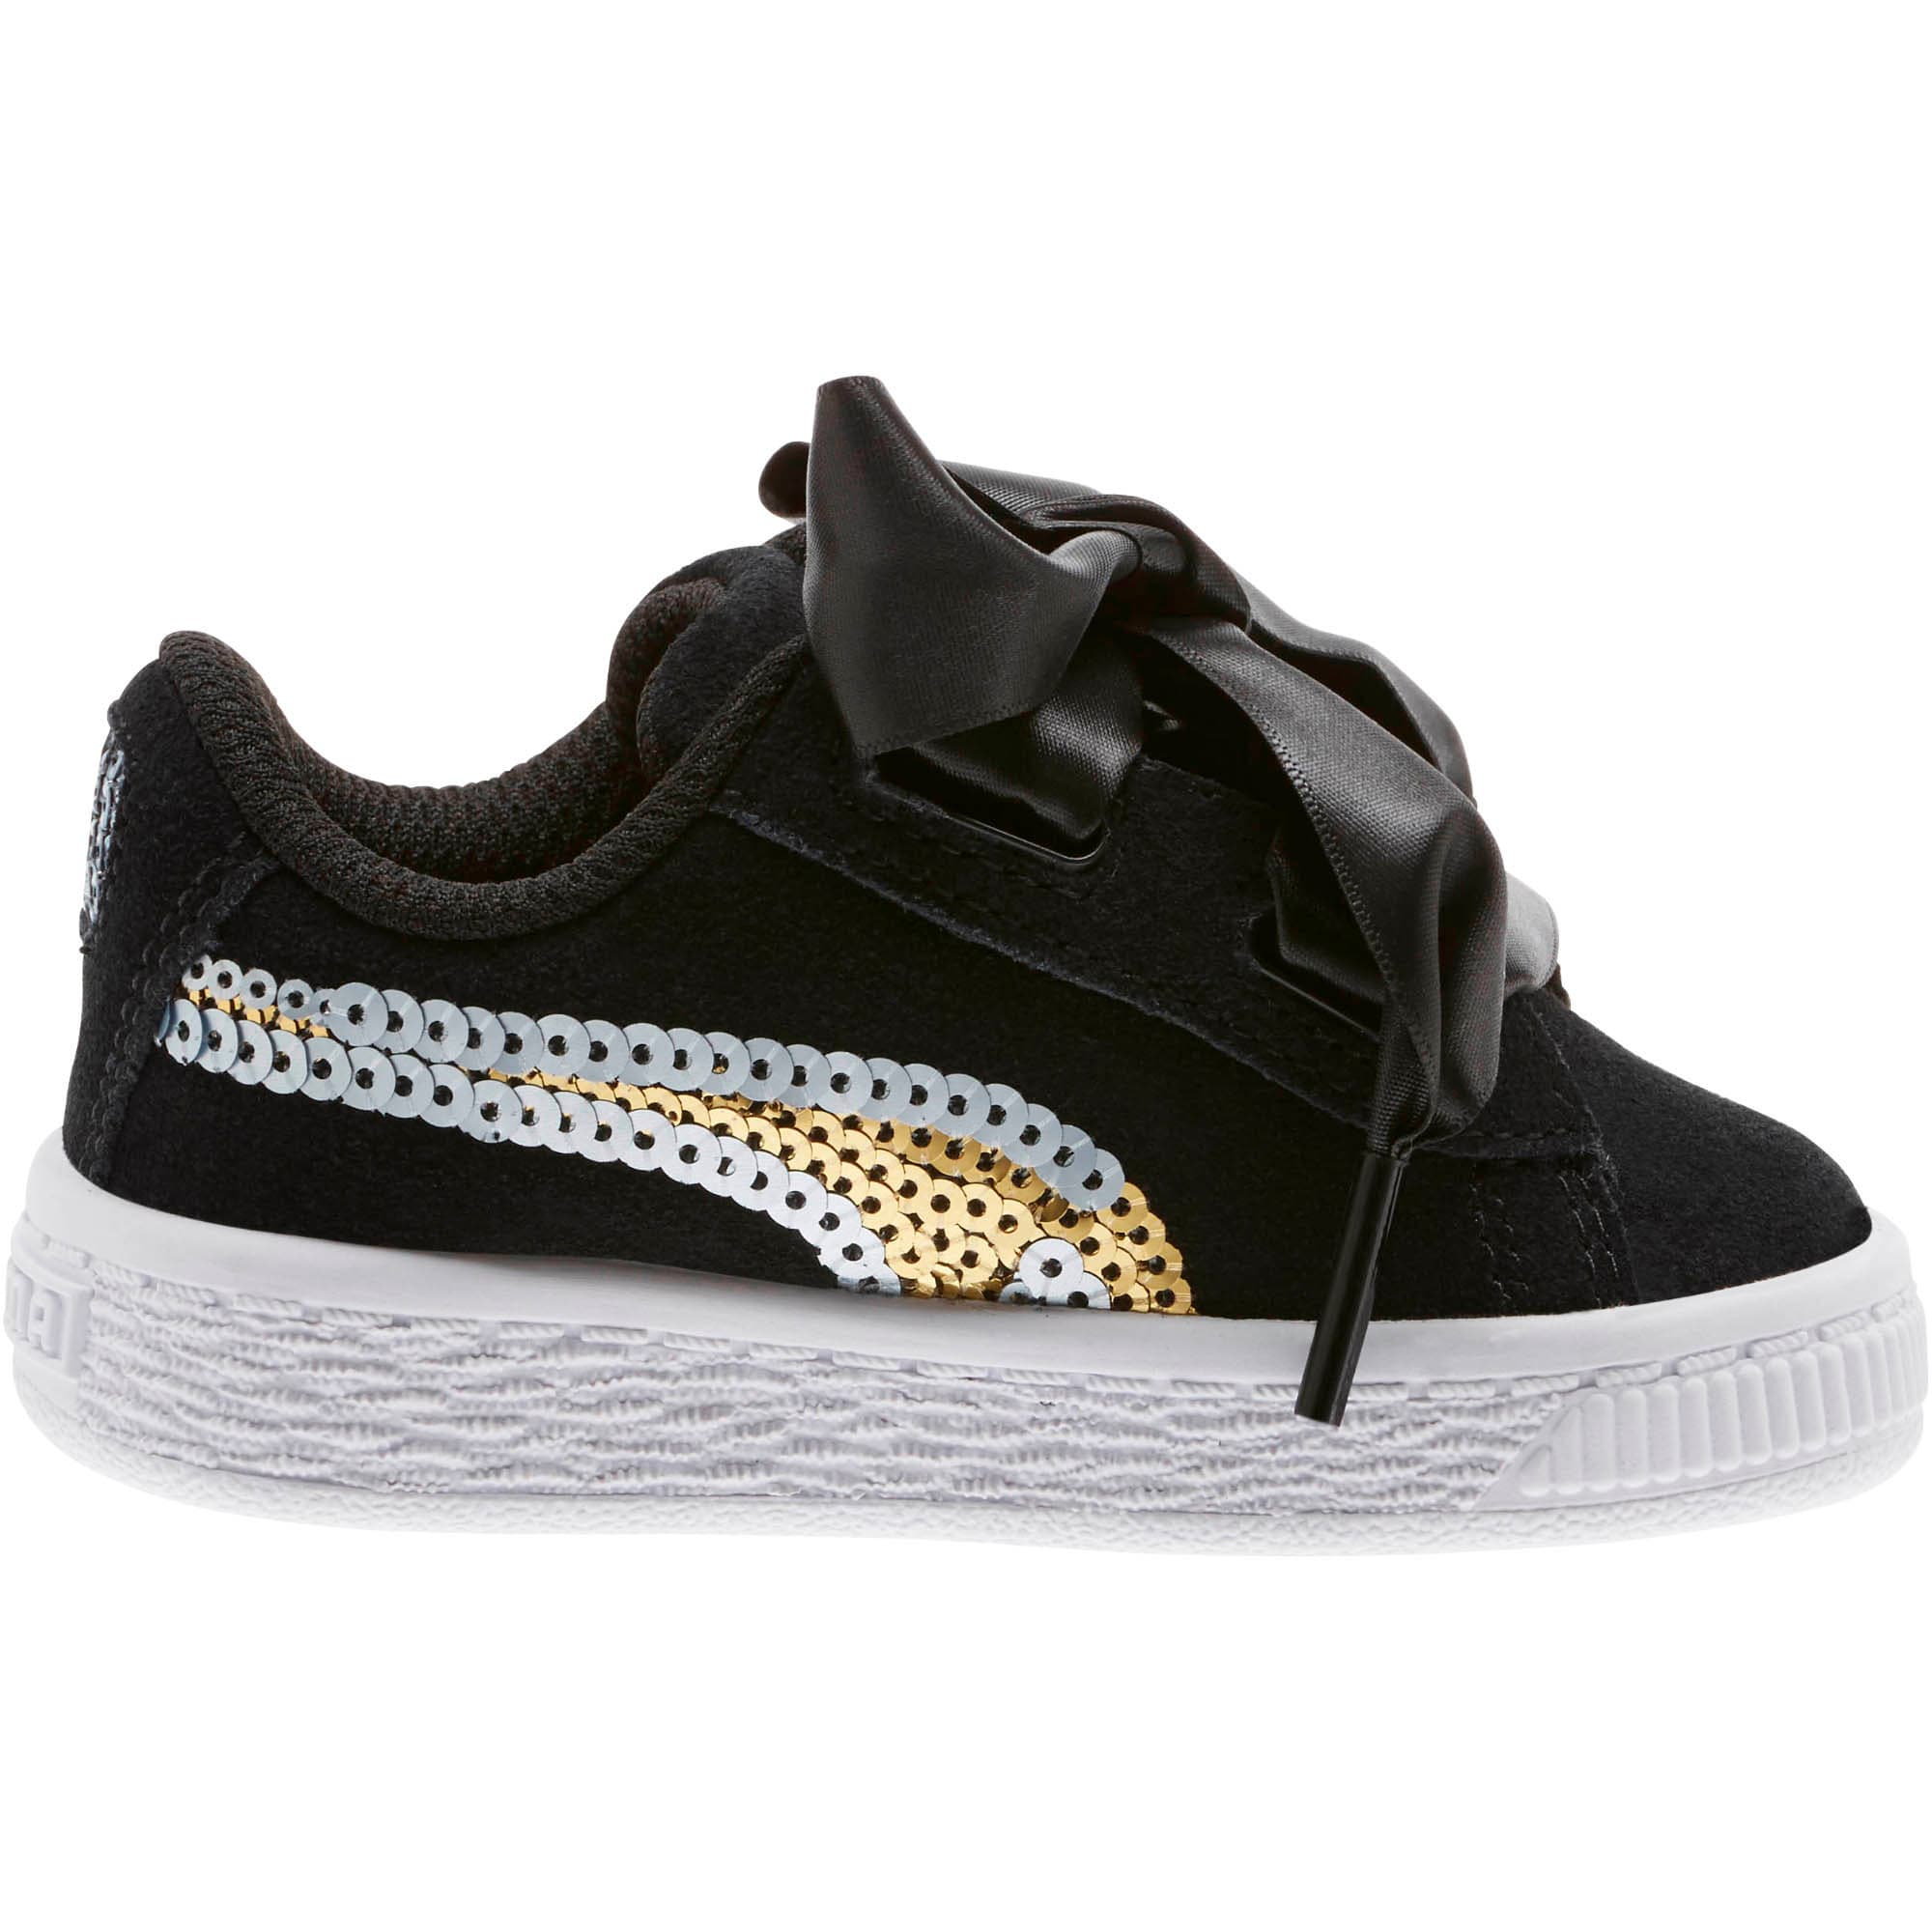 Thumbnail 3 of Suede Heart Trailblazer Sequin Little Kids' Shoes, Puma Black-Puma Team Gold, medium